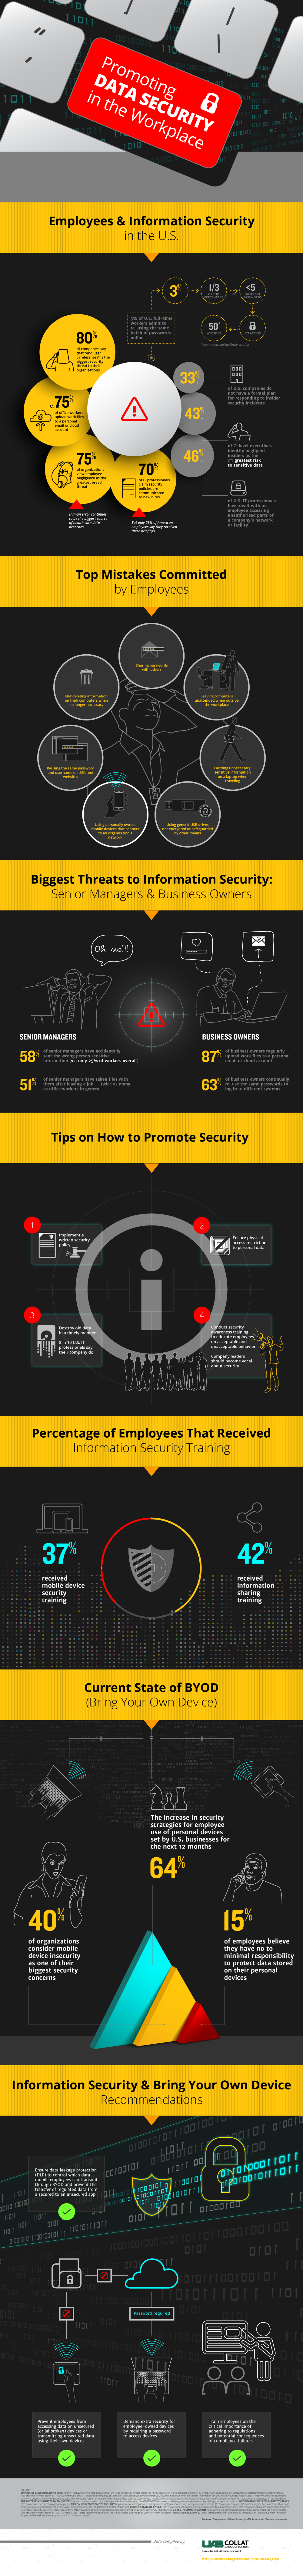 Promoting Data Security in the Workplace - YourDailyTech